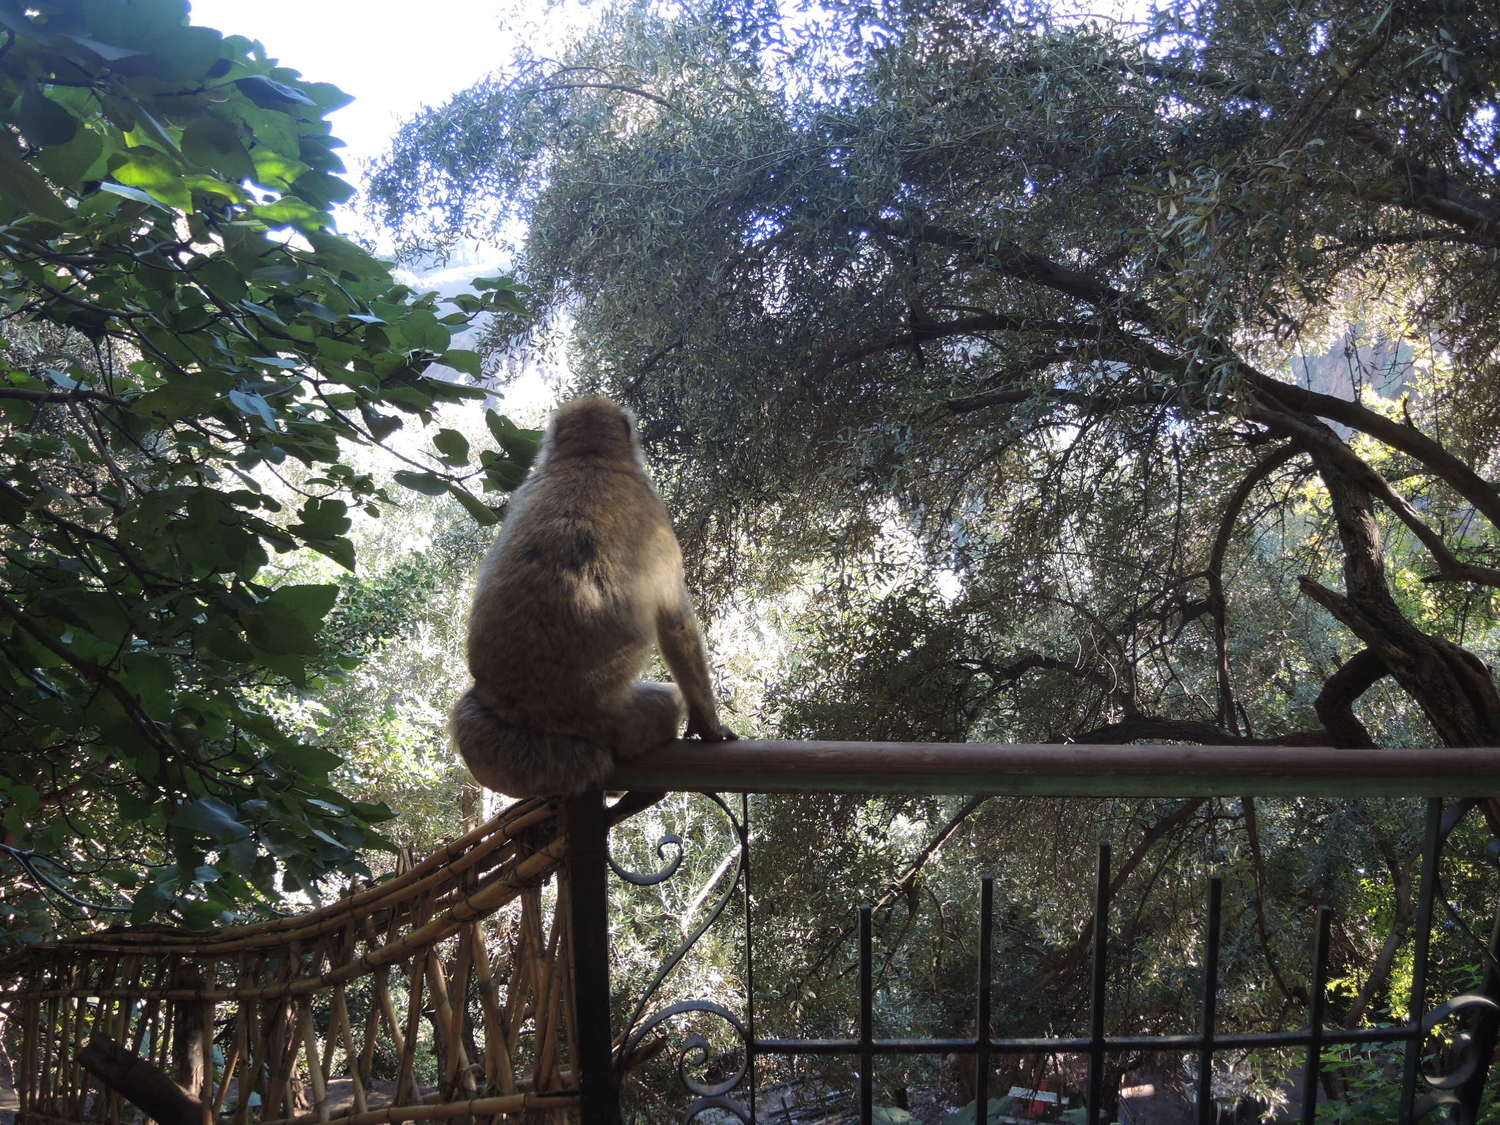 Wild but socializing monkeys in the Atlas Mountains